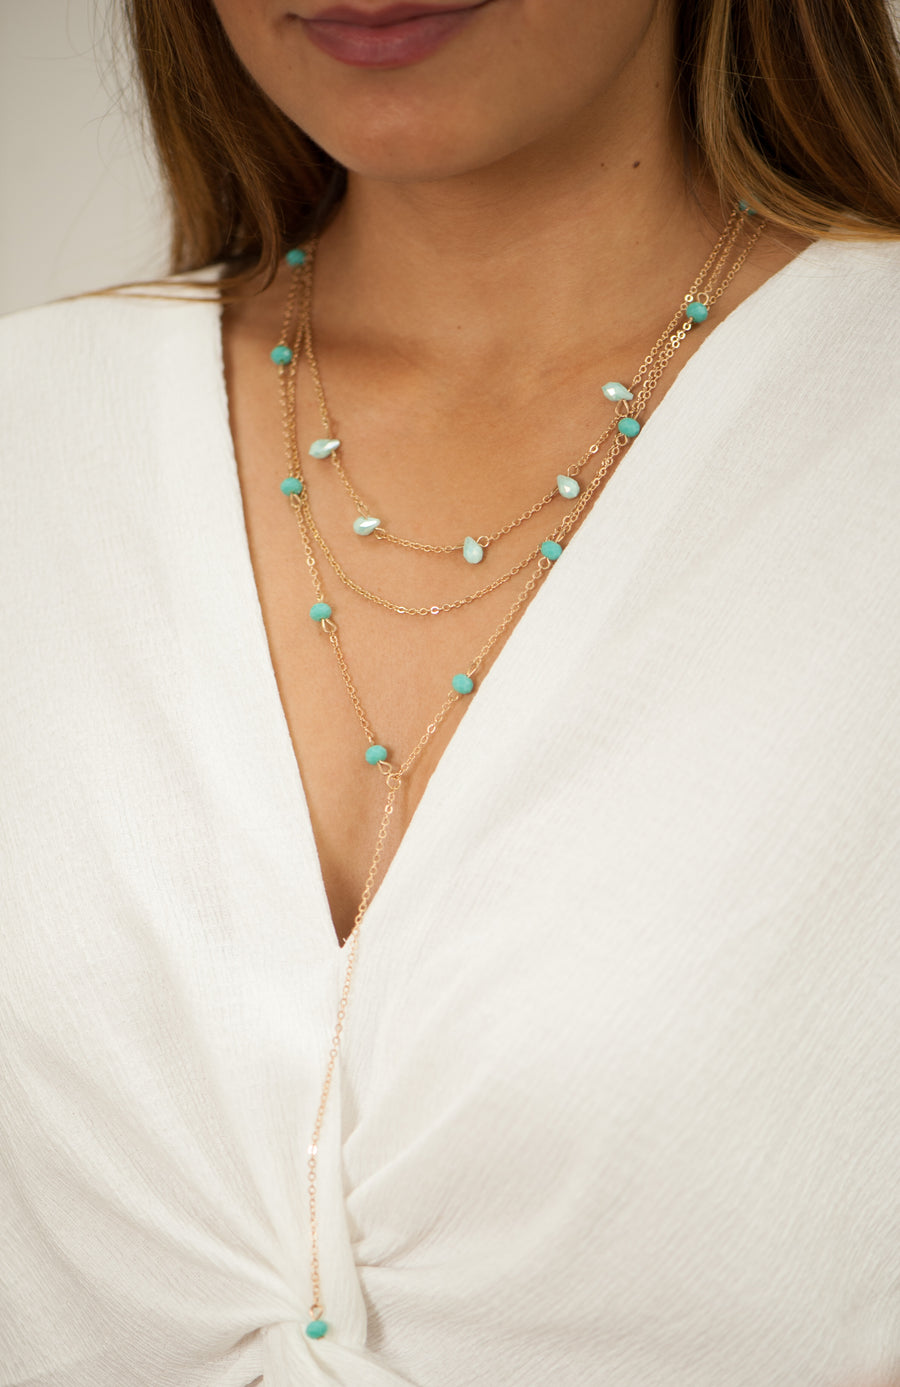 Wilshire Necklace - Shémoni Jewelry